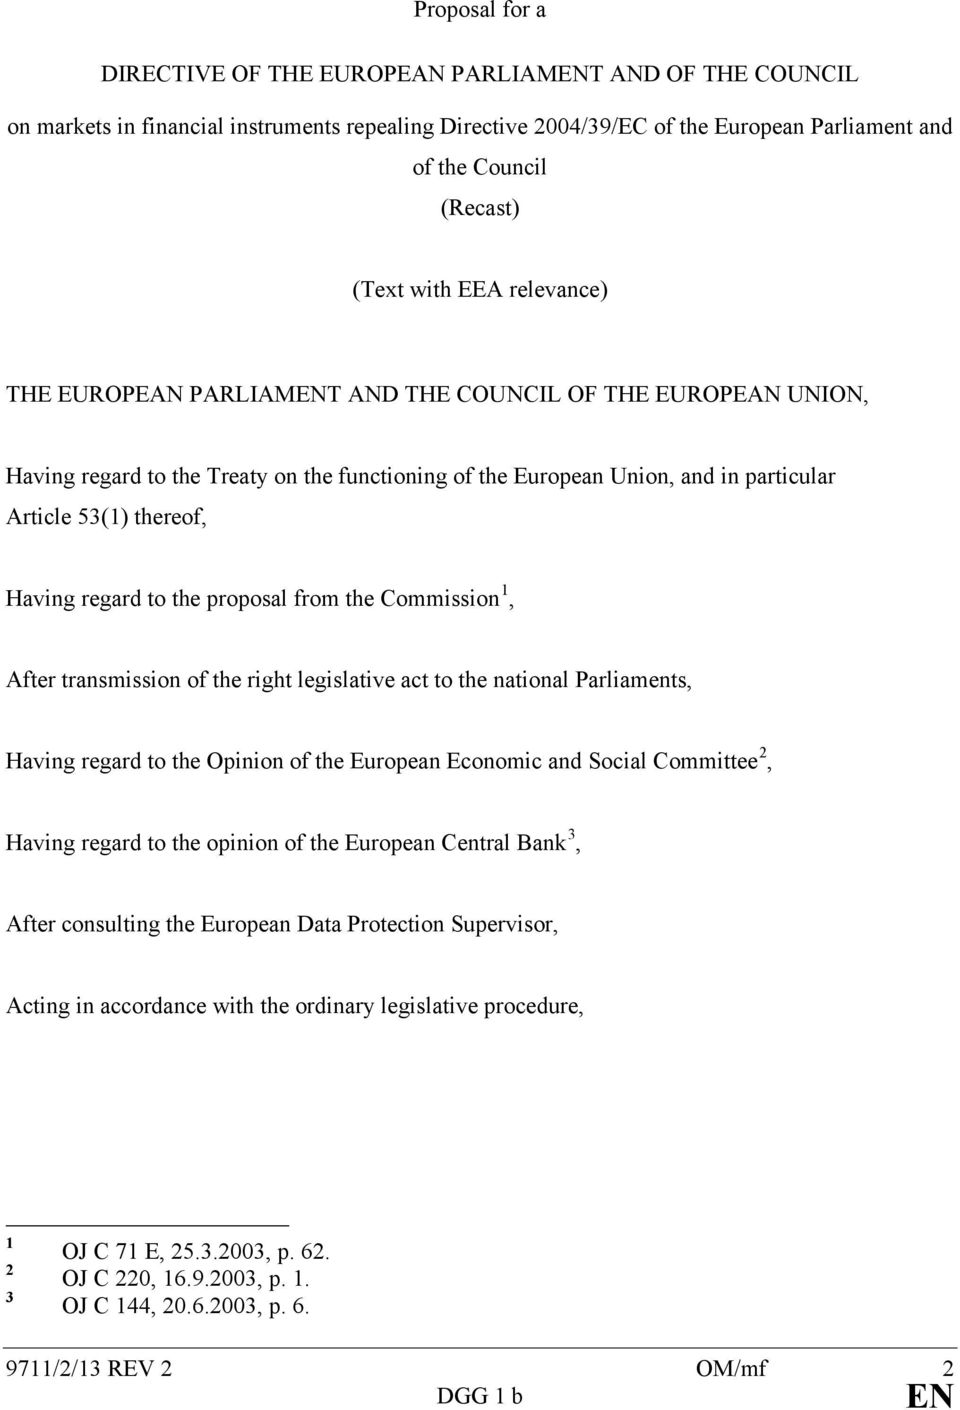 regard to the proposal from the Commission 1, After transmission of the right legislative act to the national Parliaments, Having regard to the Opinion of the European Economic and Social Committee